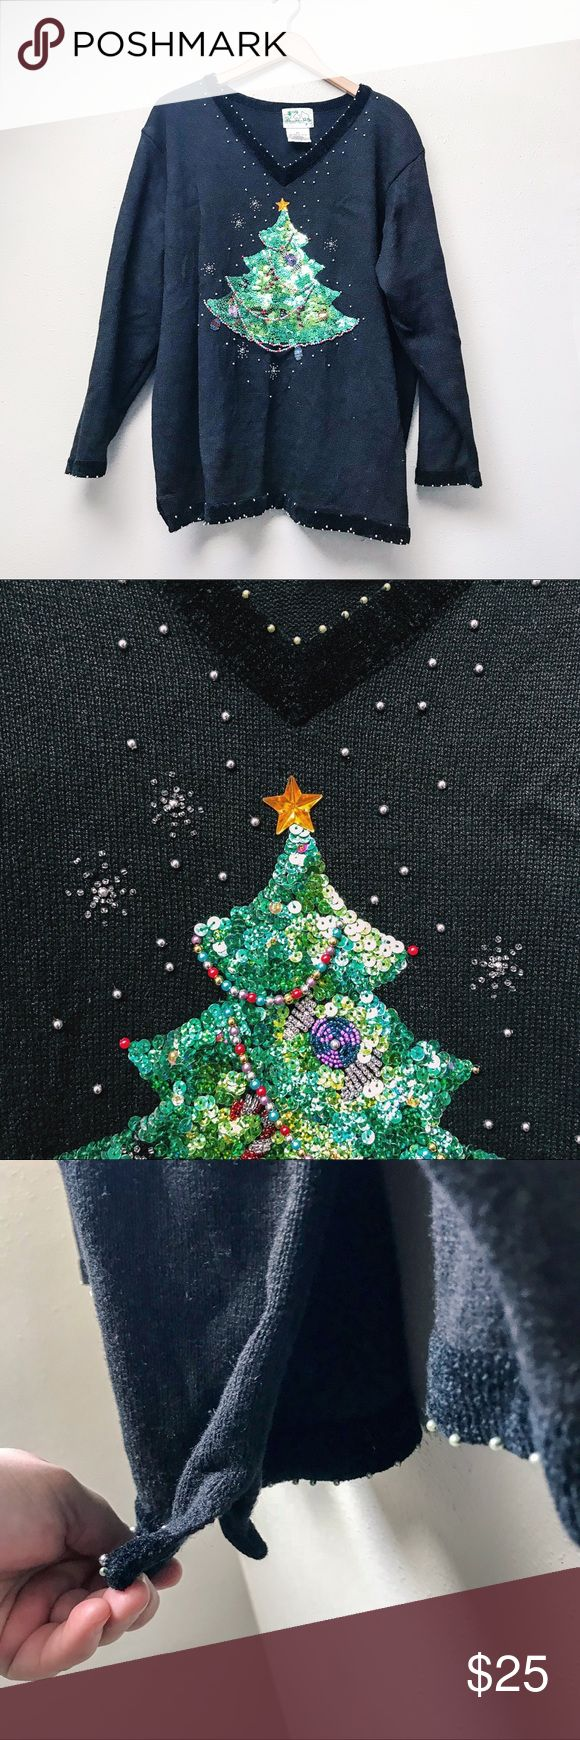 """Plus // """"Ugly"""" Christmas Sweater So cute it's ugly or so ugly it's cute ~ you decide! Perfect for the holiday season, featuring sequins and gorgeous beading. Pictures do not do this piece justice! Also super comfy. In excellent pre-loved condition with no apparent flaws.  ✅Bundle & Save 🚫Trades 🚫Off-Posh 🚫Modeling  💞Shop with ease; I'm a Posh Ambassador.💞 Sweaters"""